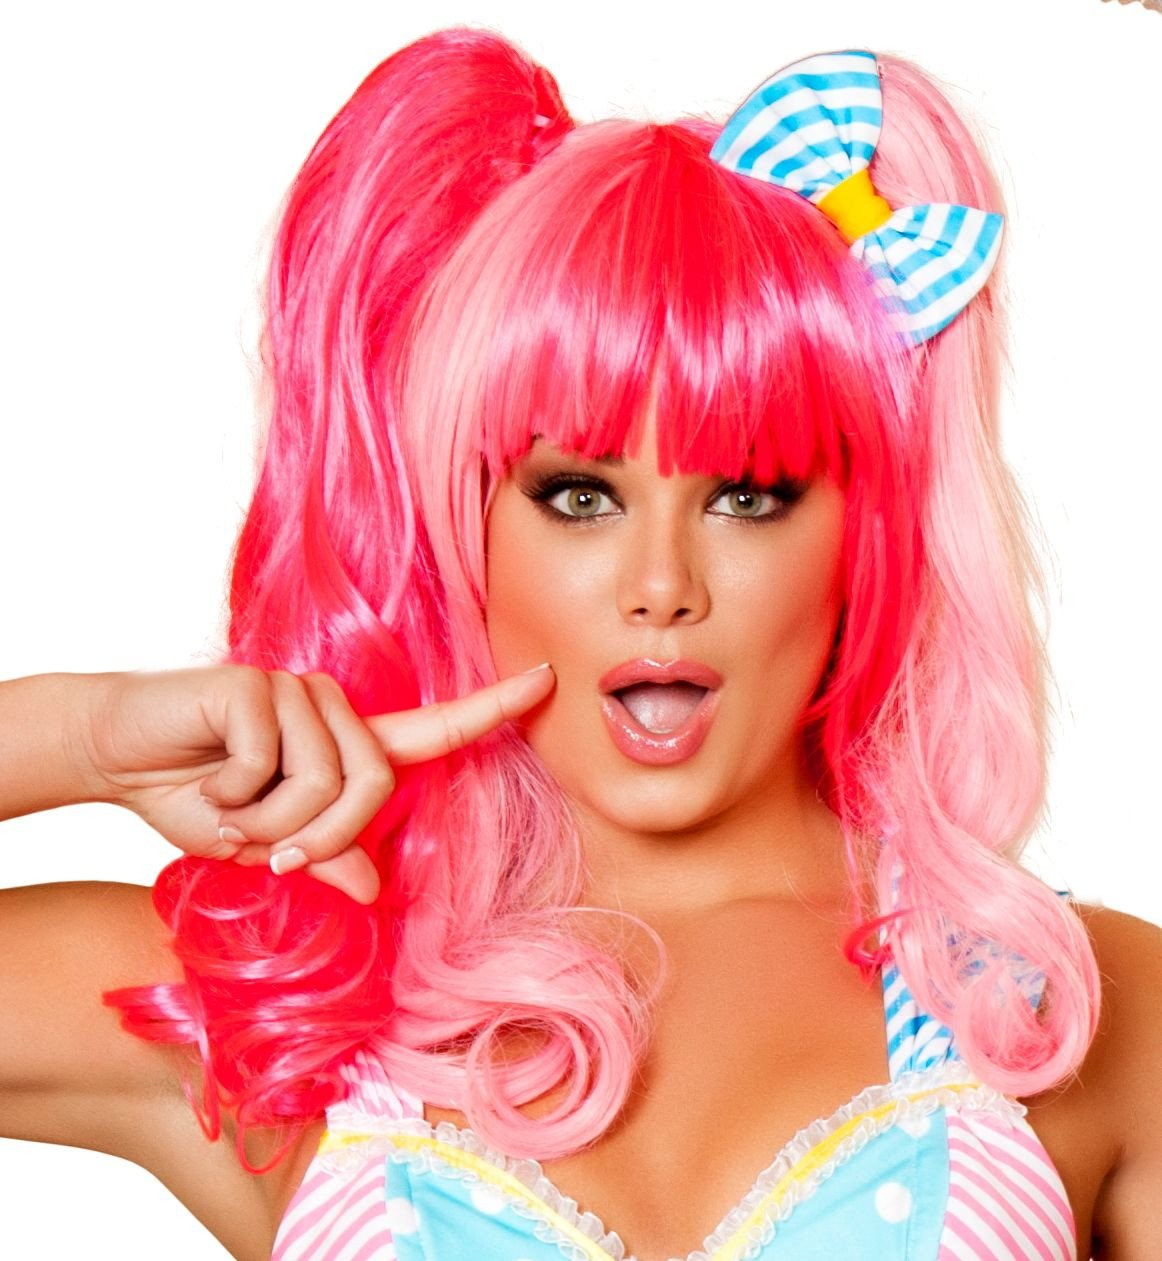 Buy WIG102 - Pink Wig from Rave Fix for $49.00 with Same Day Shipping Designed by Roma Costume WIG102-Pink-O/S